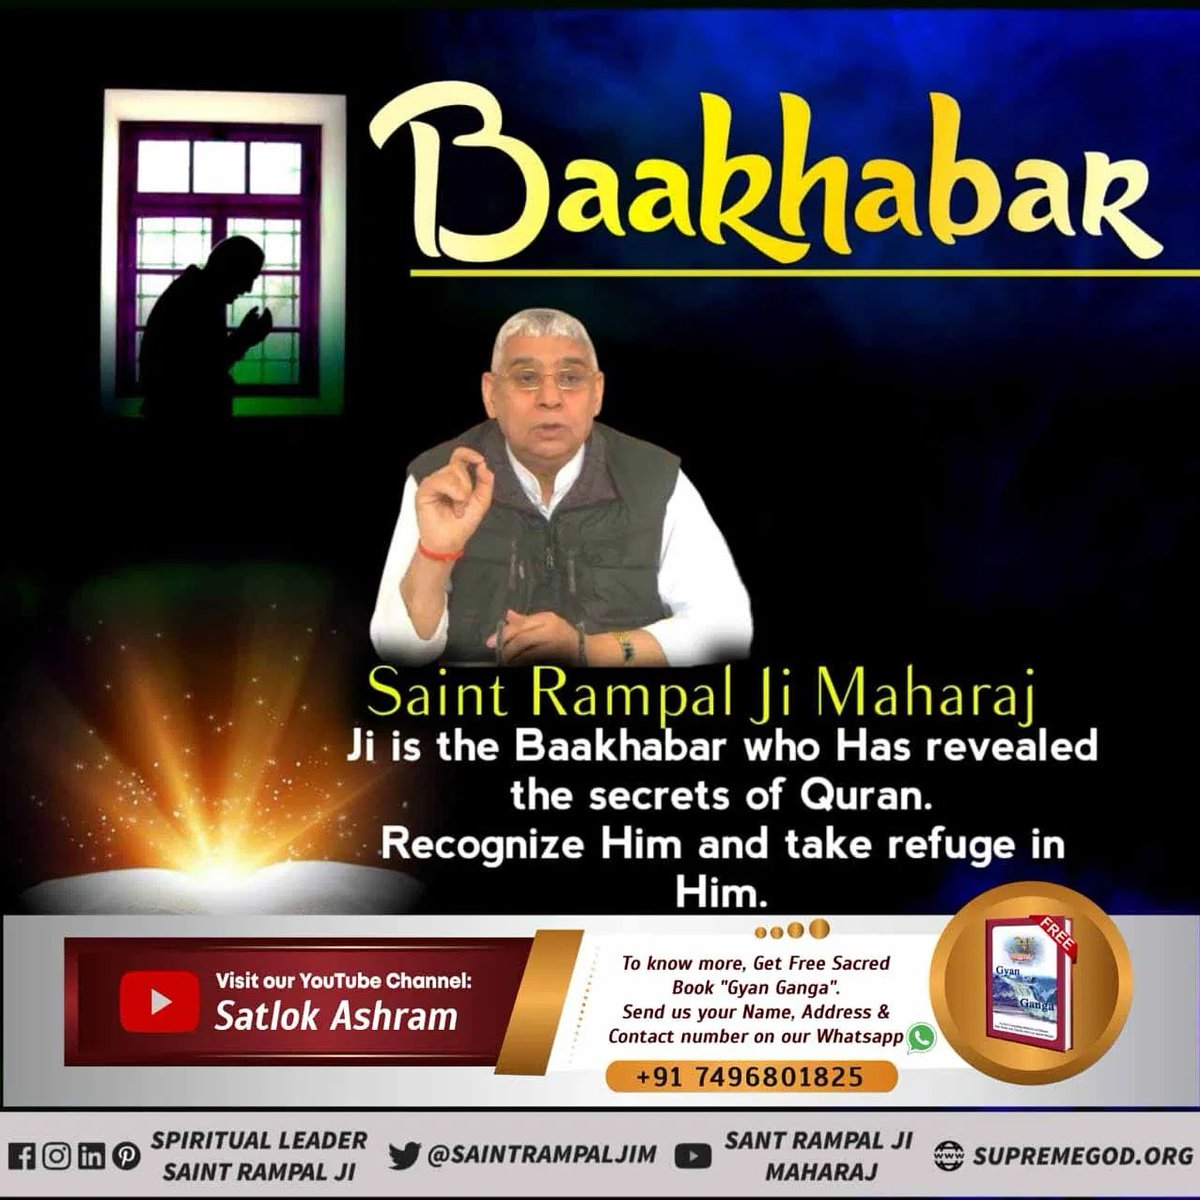 #FridayMotivation 💥Allahu Akbar is used for allah Kabir who met Hazrat Muhammad and told him about the right way of worship but because of the fear of Jibril Muhammad could not believe it.  🔺Visit ➡️ Sant Rampal Ji Maharaj YouTube channel  Baakhabar Sant Rampal Ji